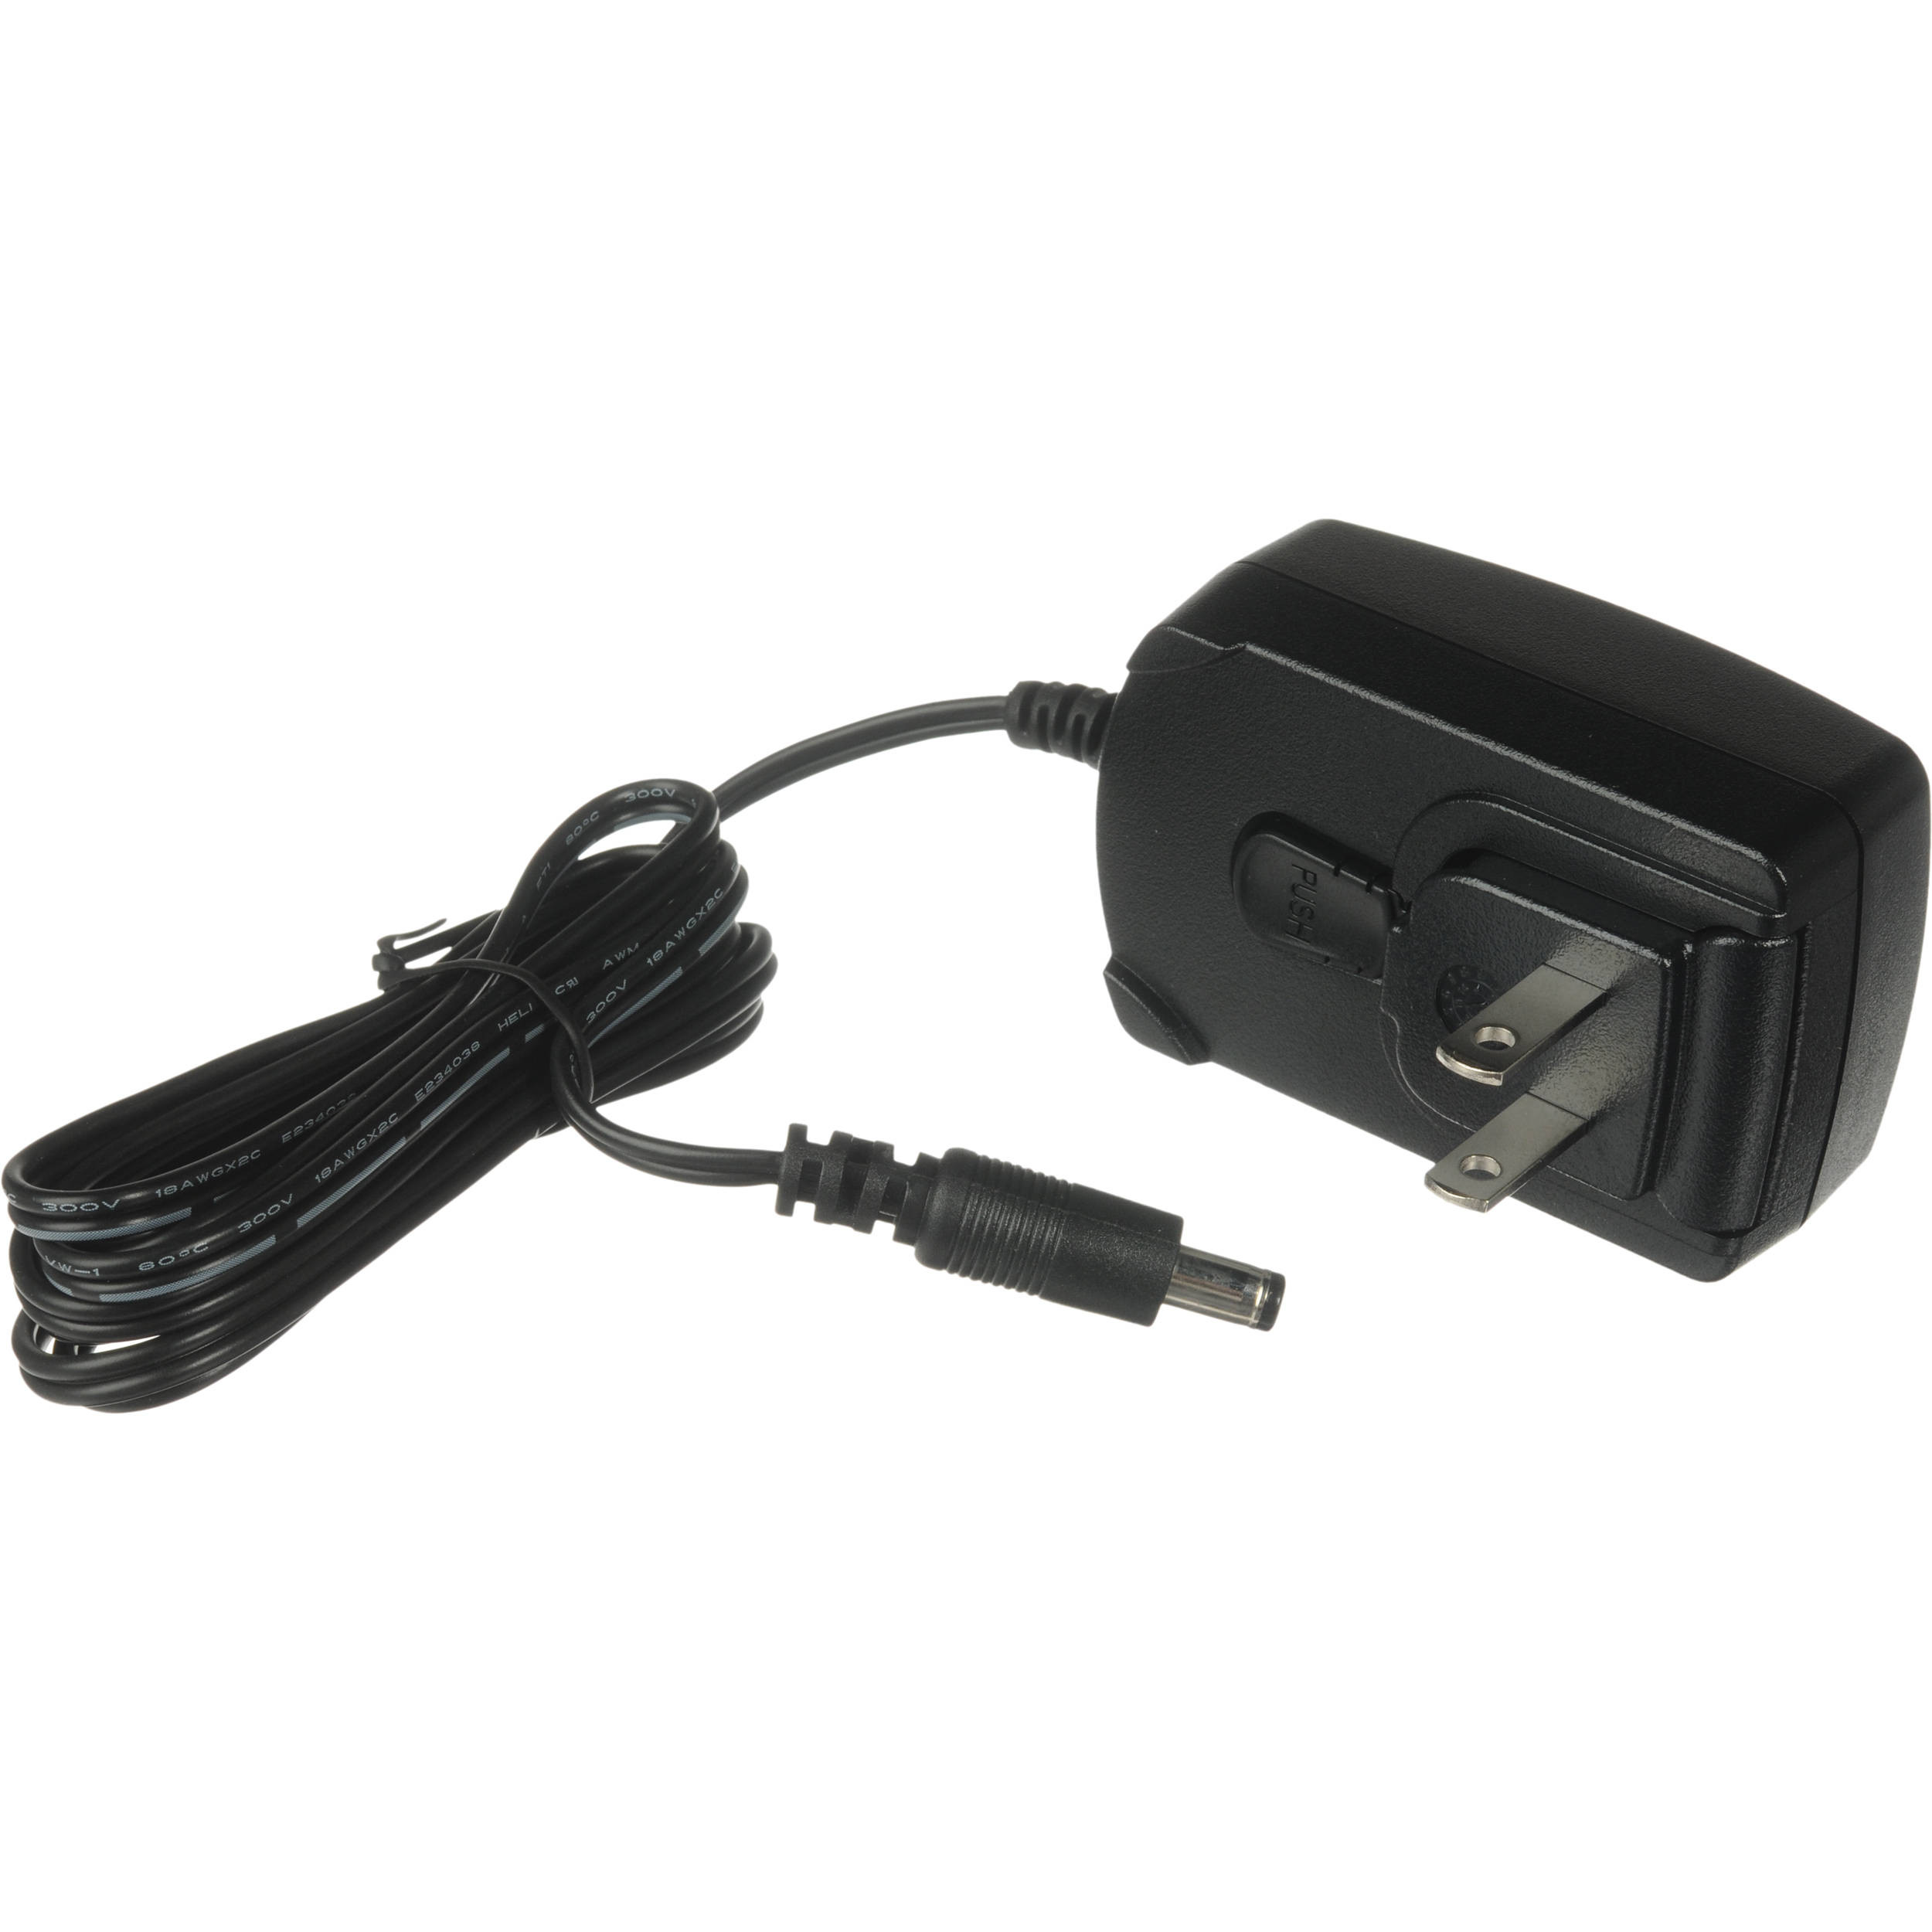 LINKSYS AC ADAPTER FOR VOIP PRODUCTS PA100-NA